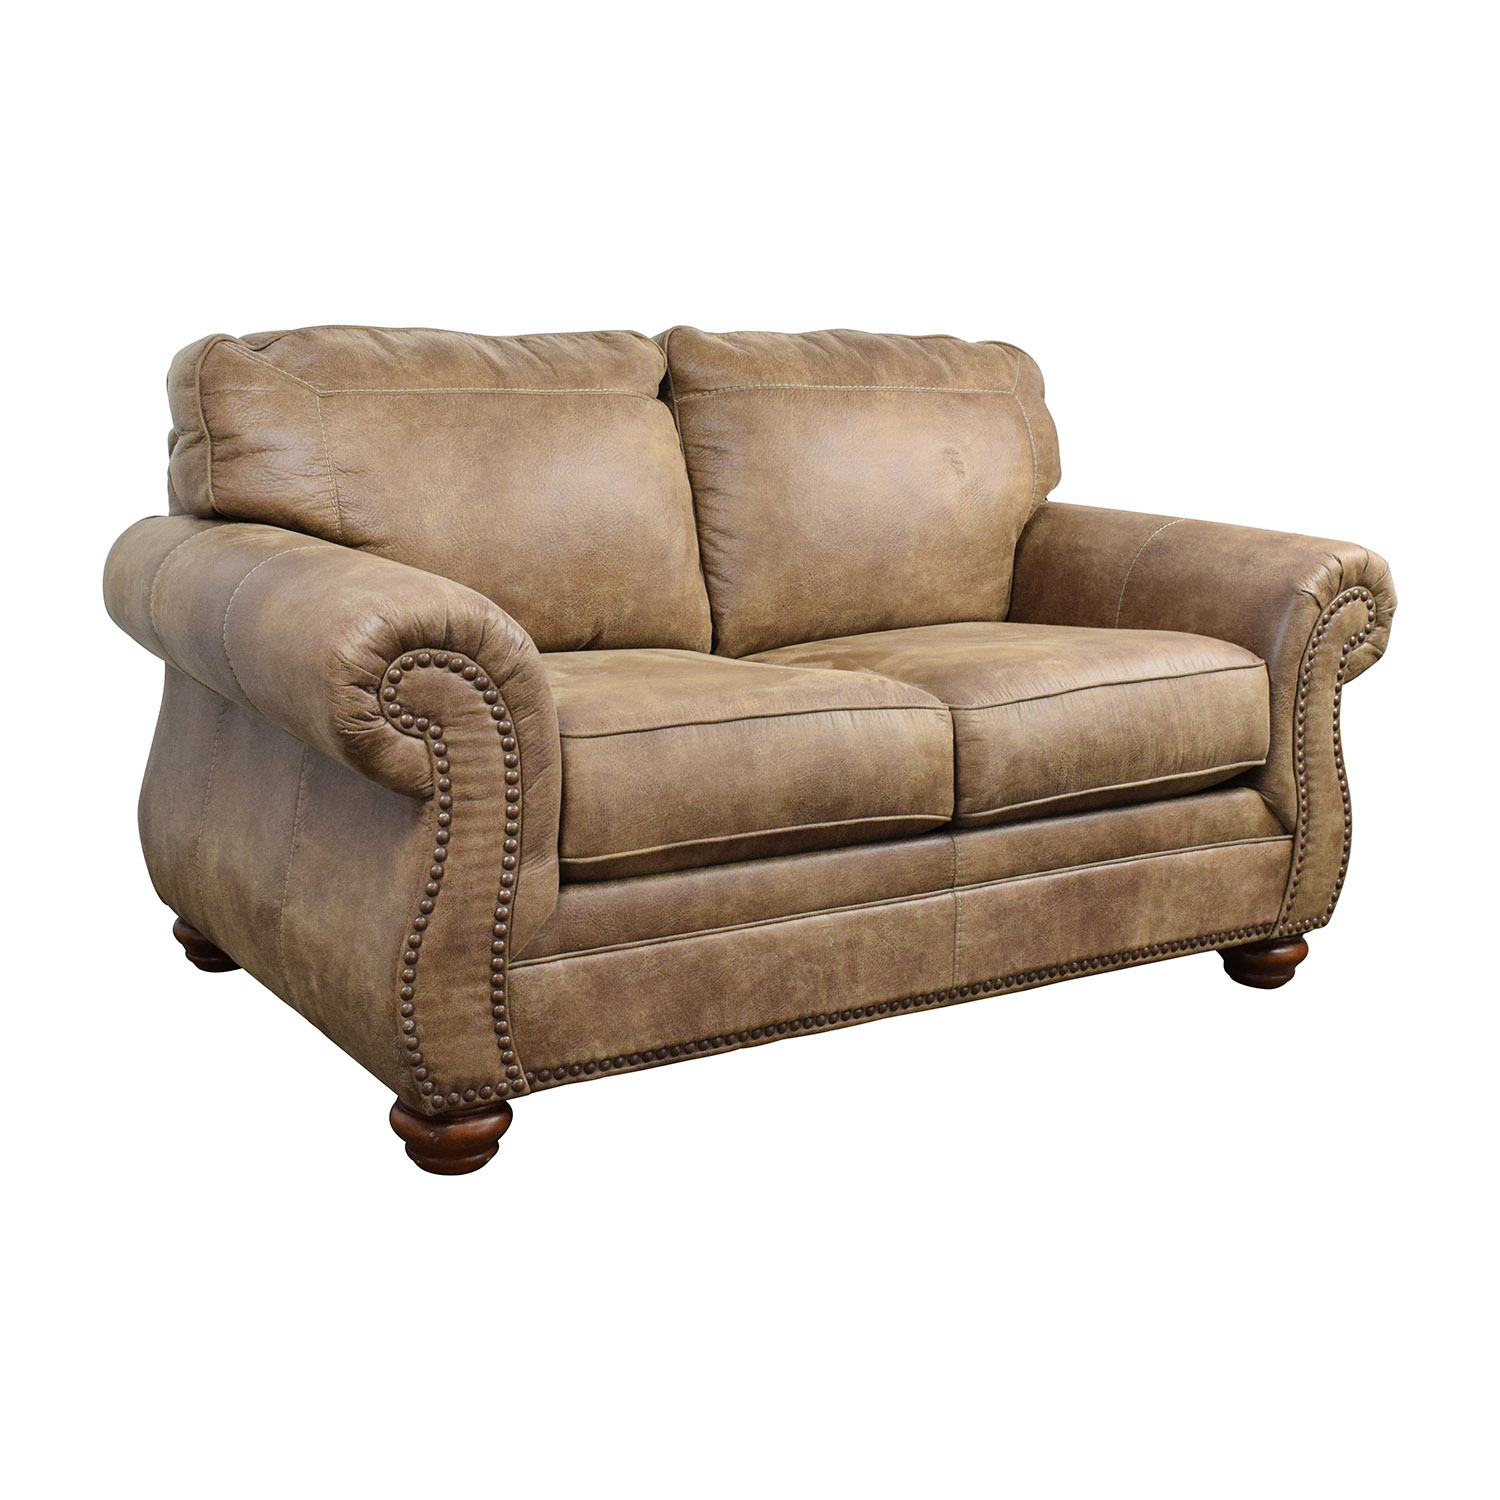 57 off signature design by ashley signature design by ashley tallow faux leather loveseat sofas Ashley couch and loveseat